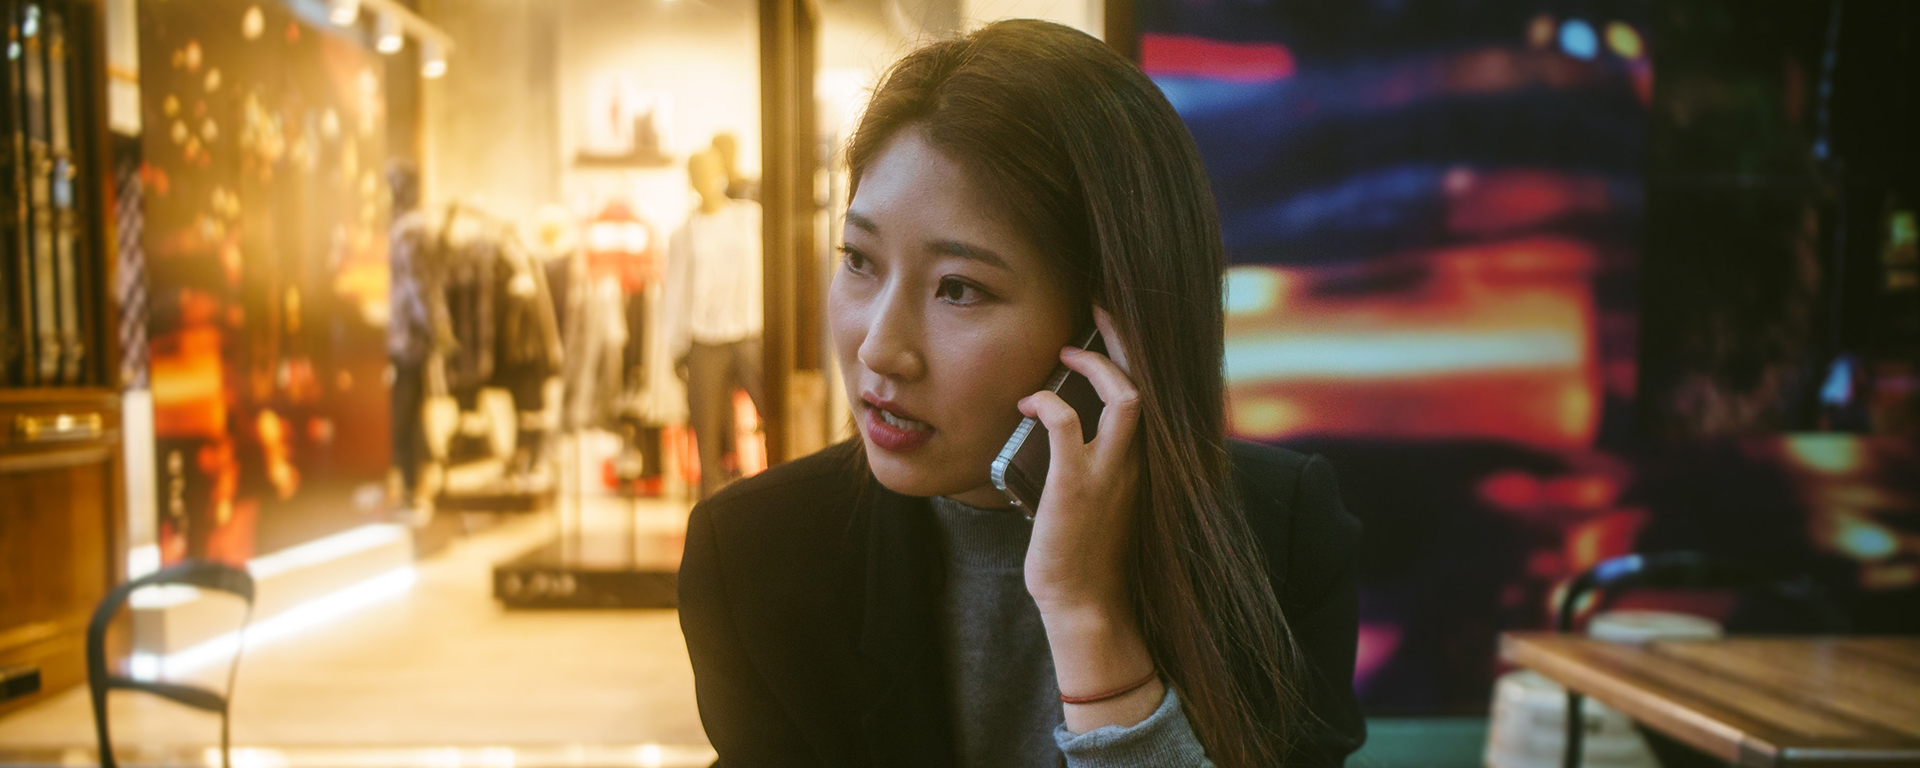 An Asian woman talks on the phone with a serious look on her face